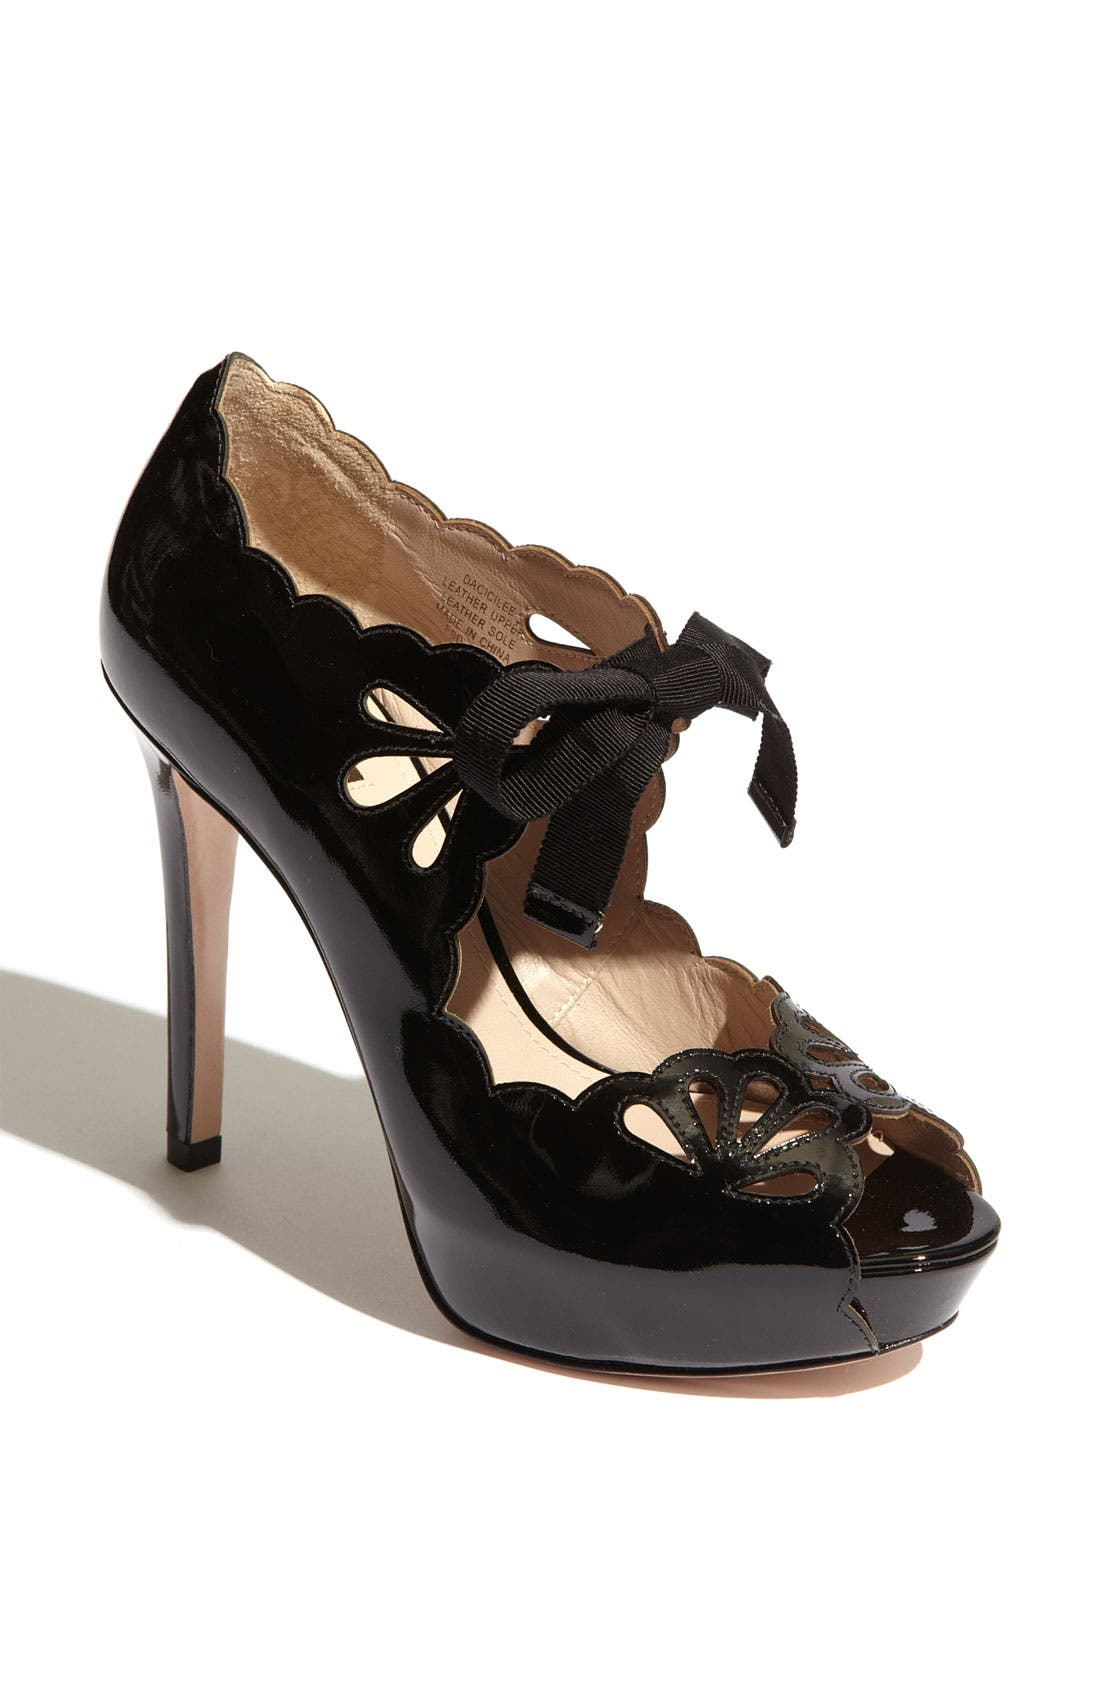 Main Image - Joan & David 'Cicilee' Pump